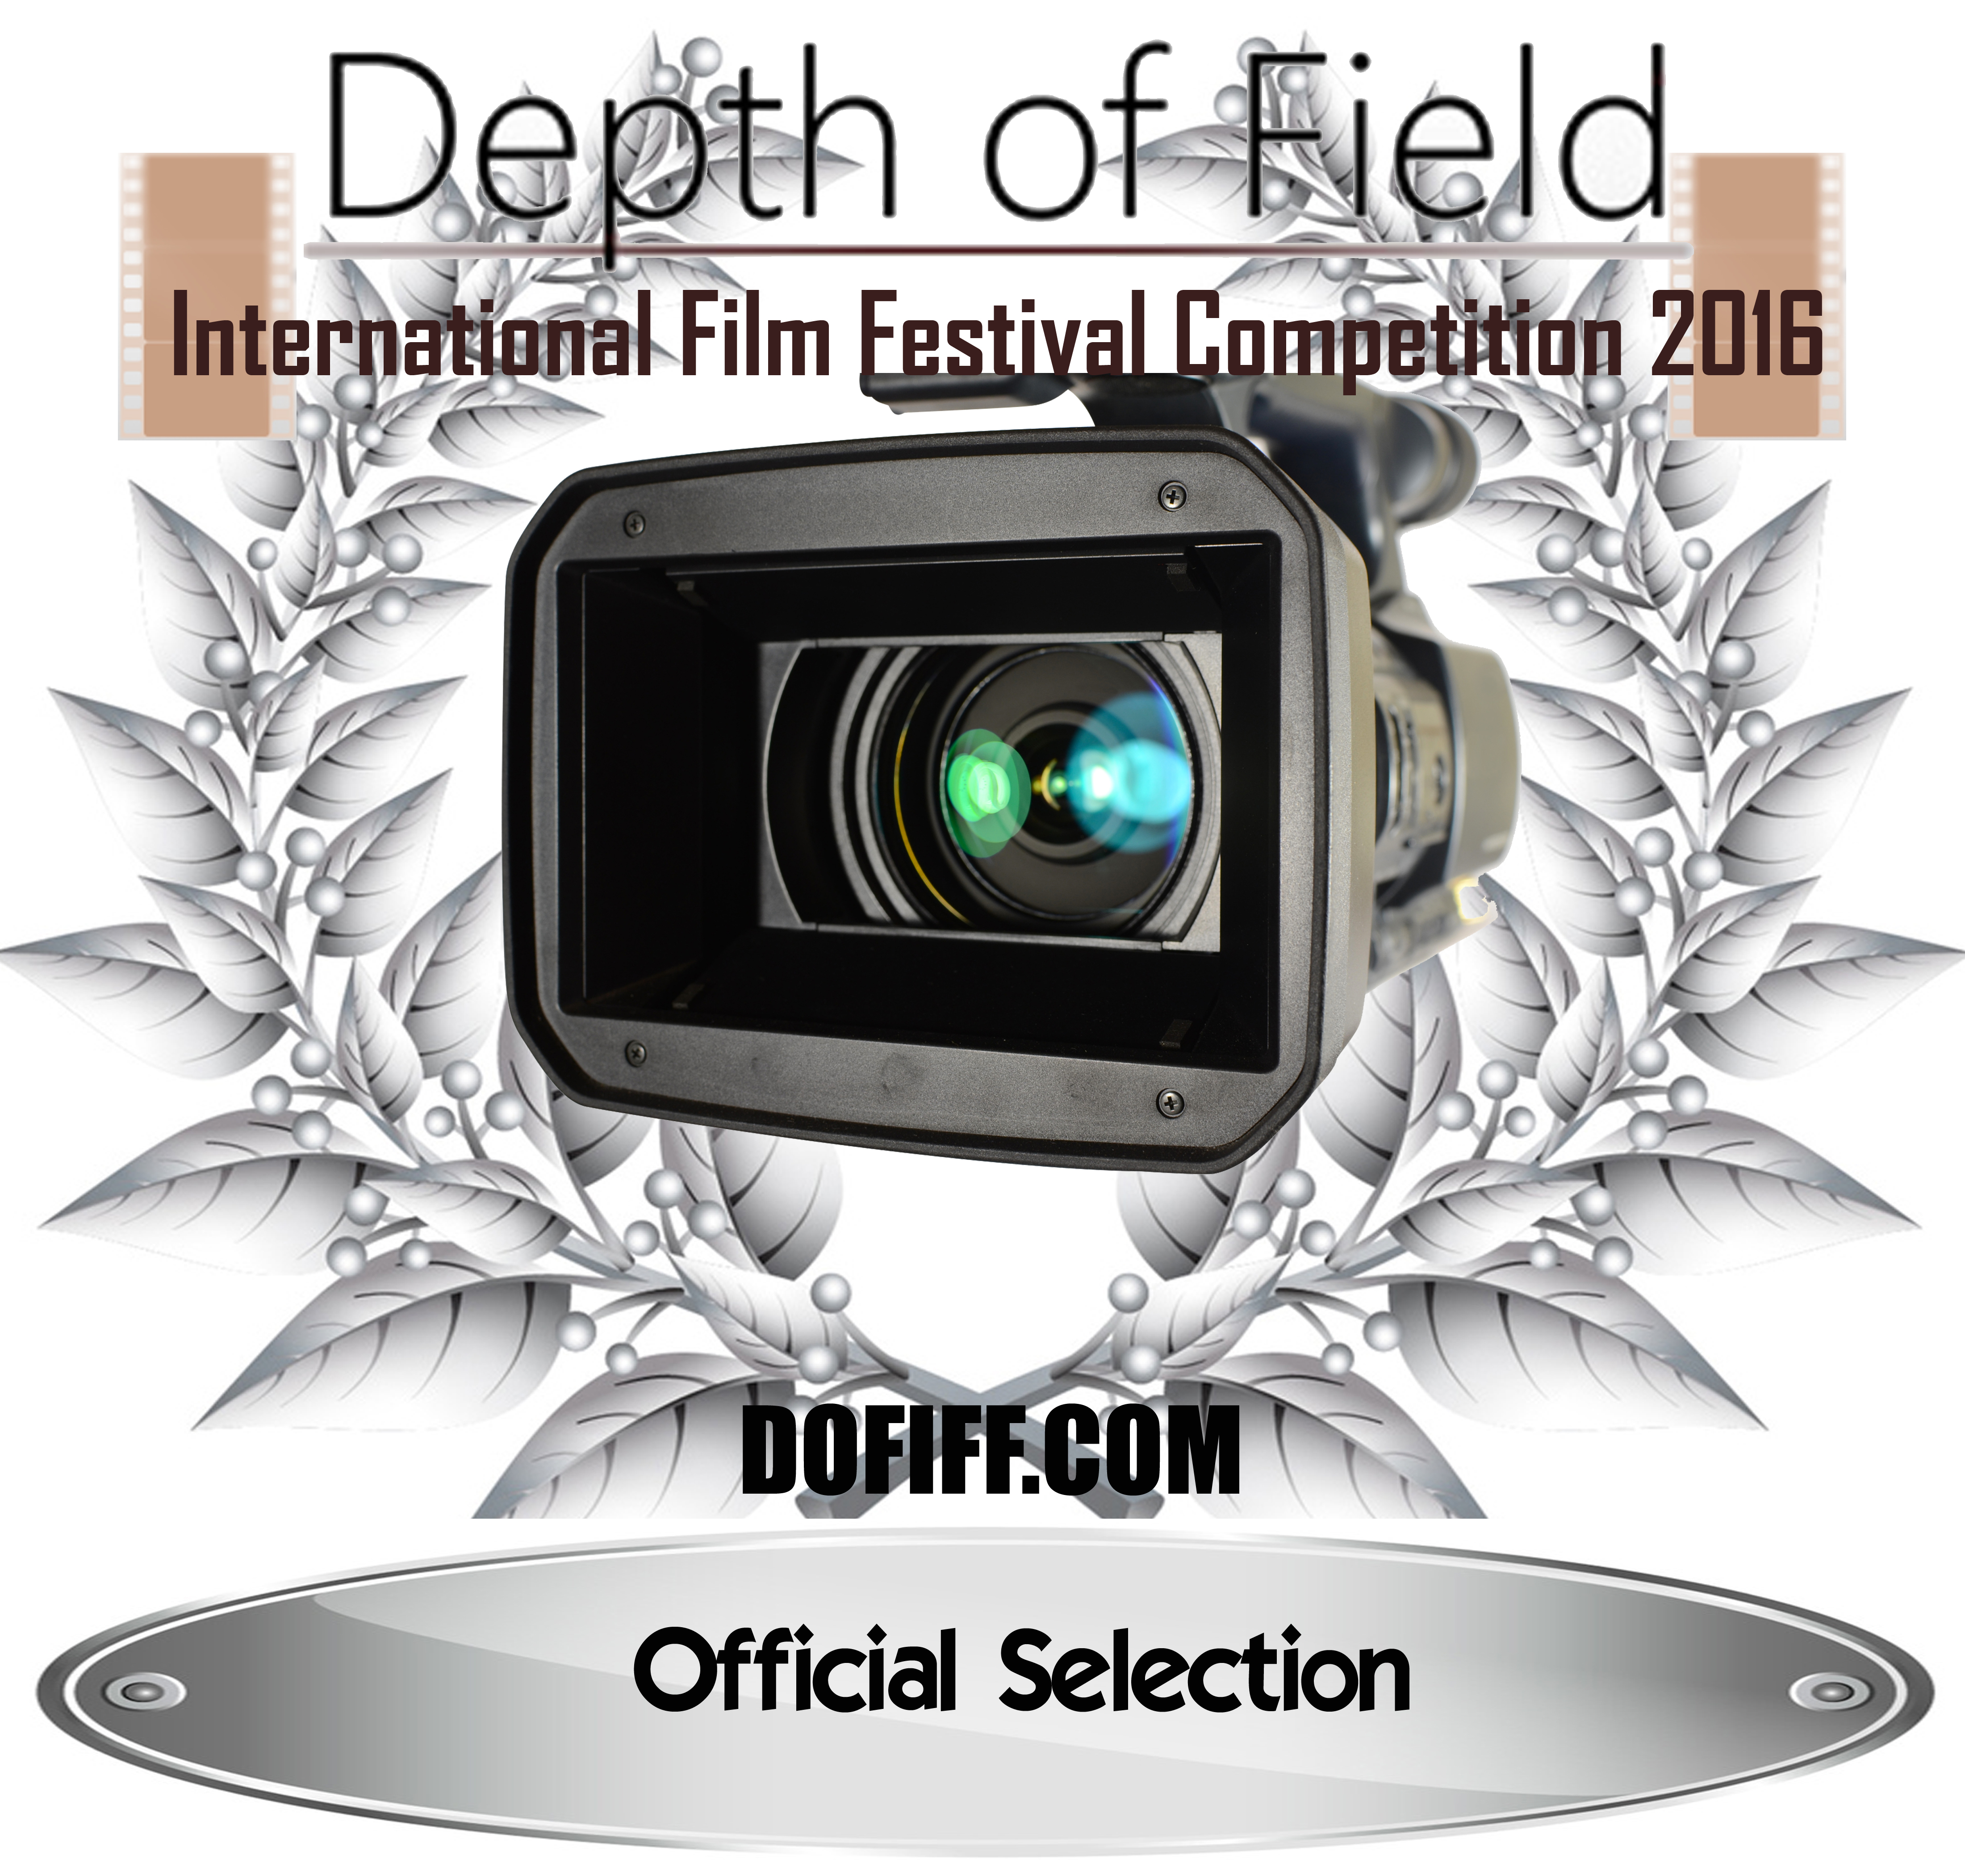 Depth of Field Film Festival,C - A Celebration of Life,C A Celebration of Life, Celebration of Life, A Celebration of Life,Mission Positive Films,MPF,Documentary,Cancer Documentary,Cancer survivors,Cancer Survival,Cancer Stories,Cancer Survival stories